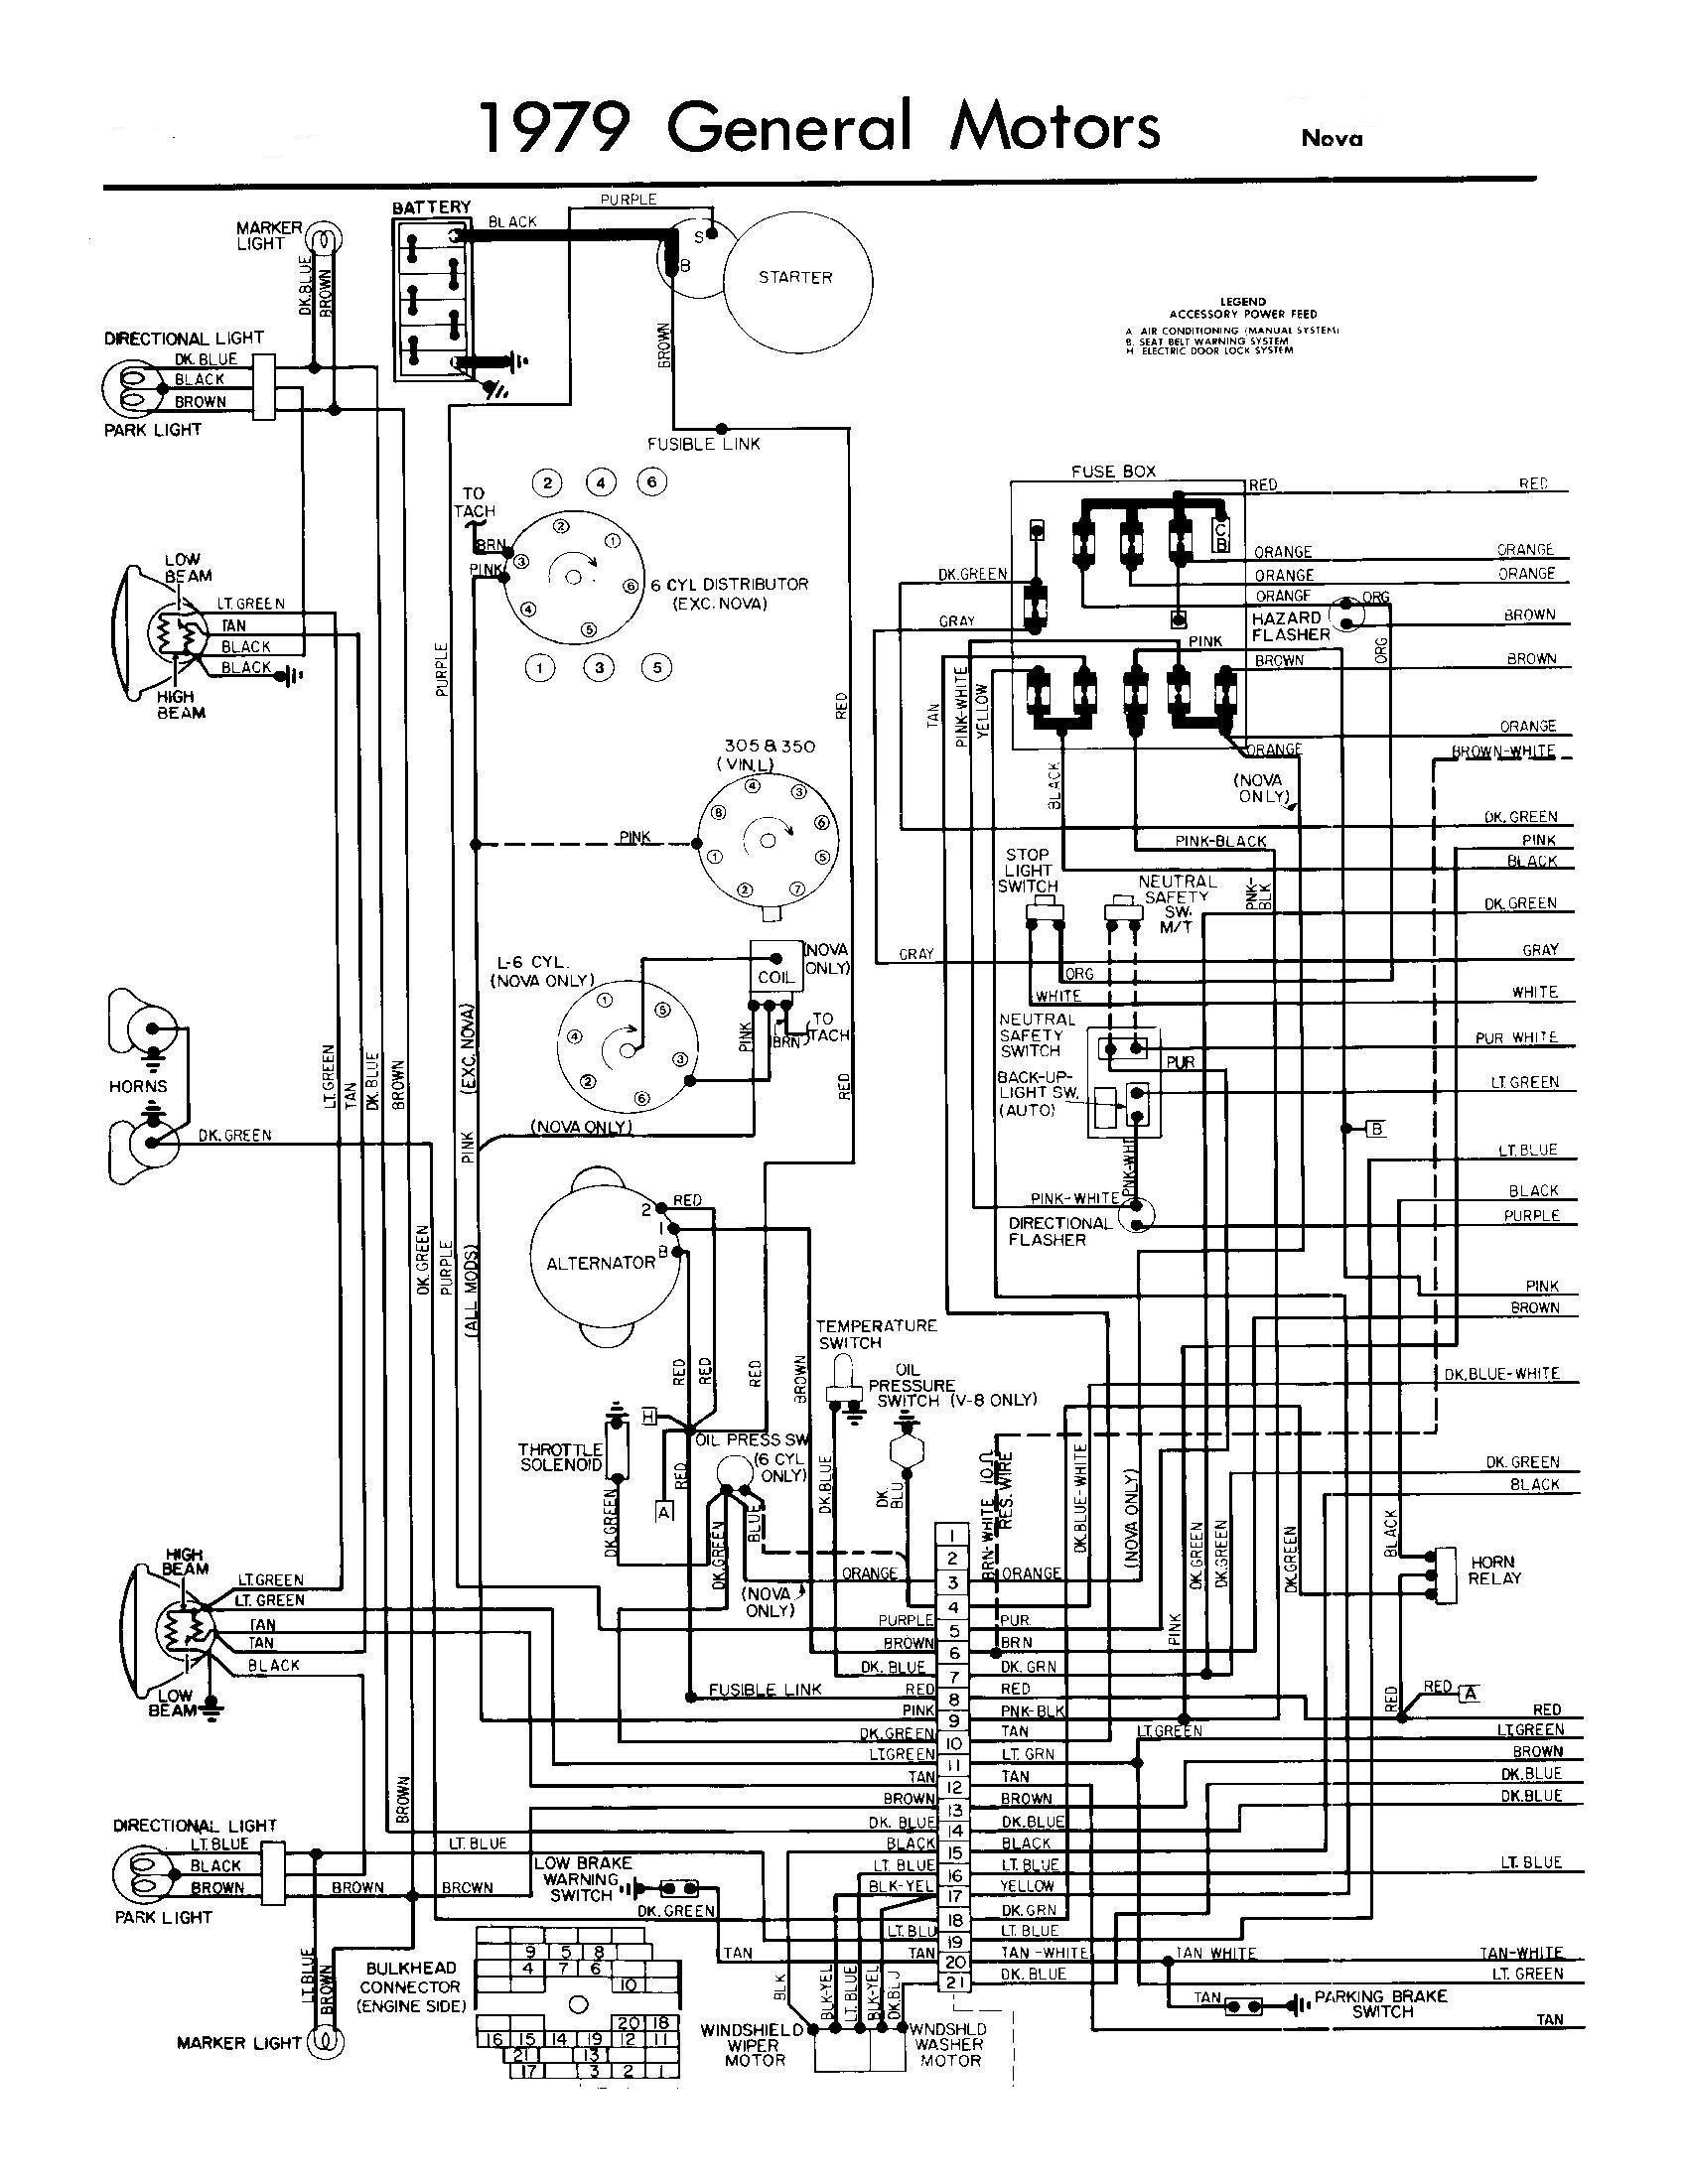 hight resolution of 1985 dodge wiring harness diagram wiring diagrams schematicvintage dodge wiring harness today wiring diagram 1977 dodge